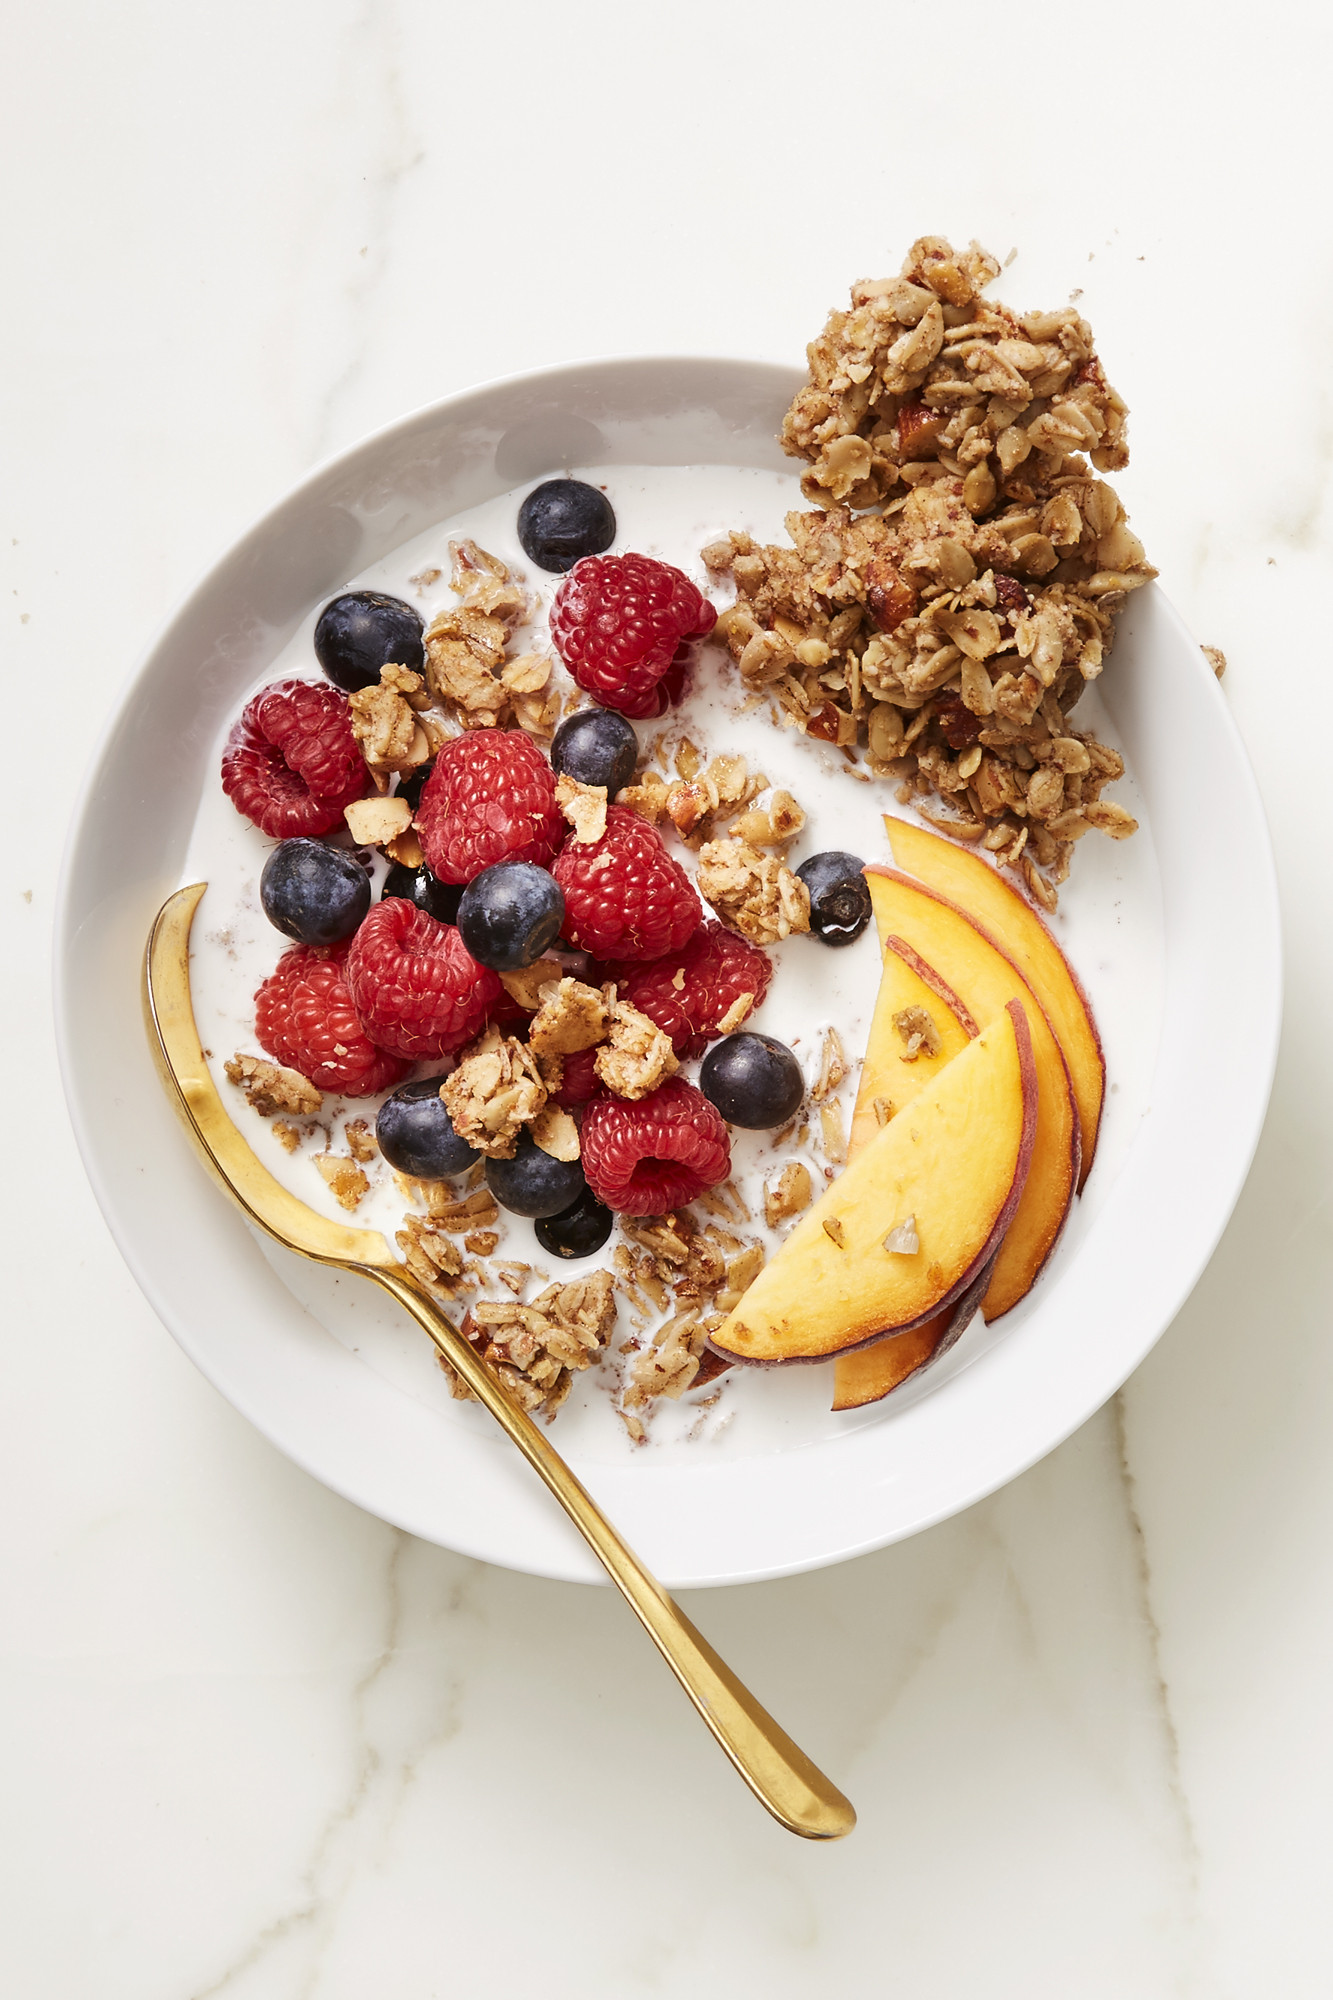 Healthy Homemade Breakfast  Best Sweet and Salty Maple Granola Bark Recipe How to